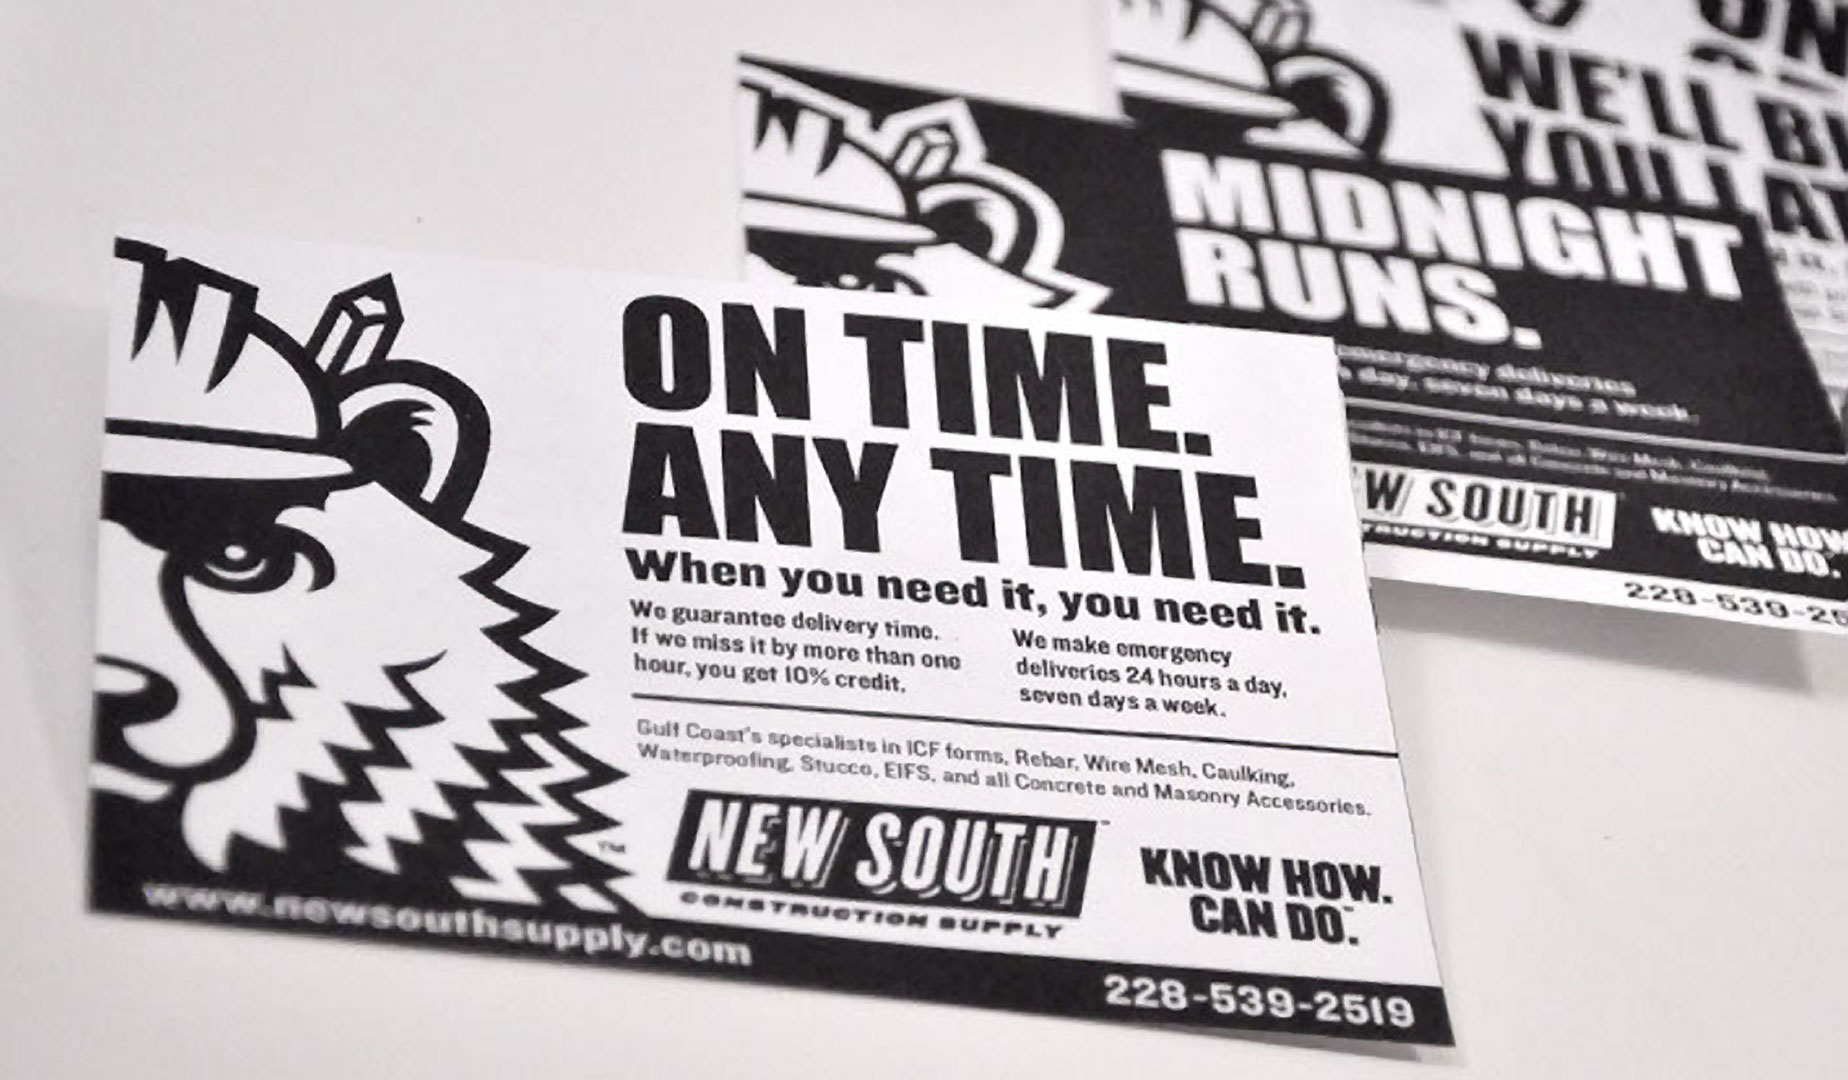 New South Construction Supply - Ad Series